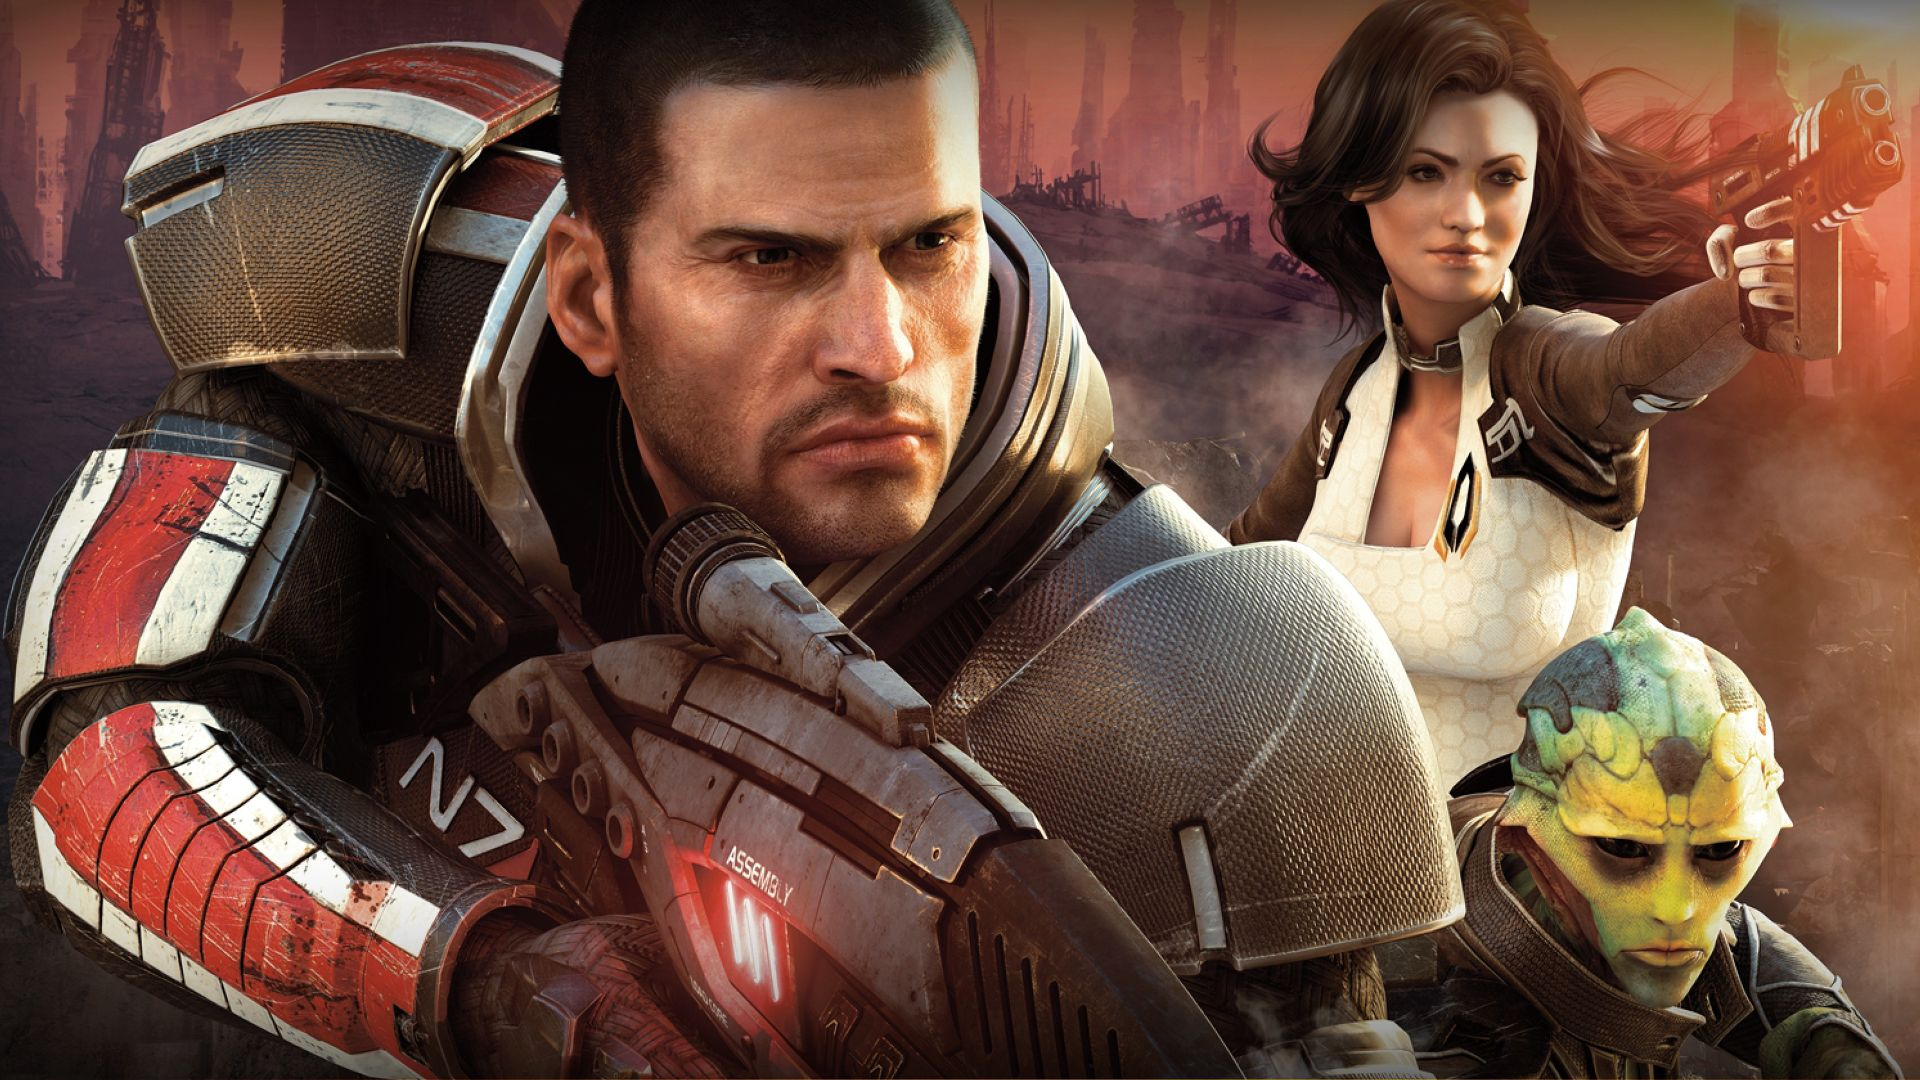 Mass Effect 2, EA